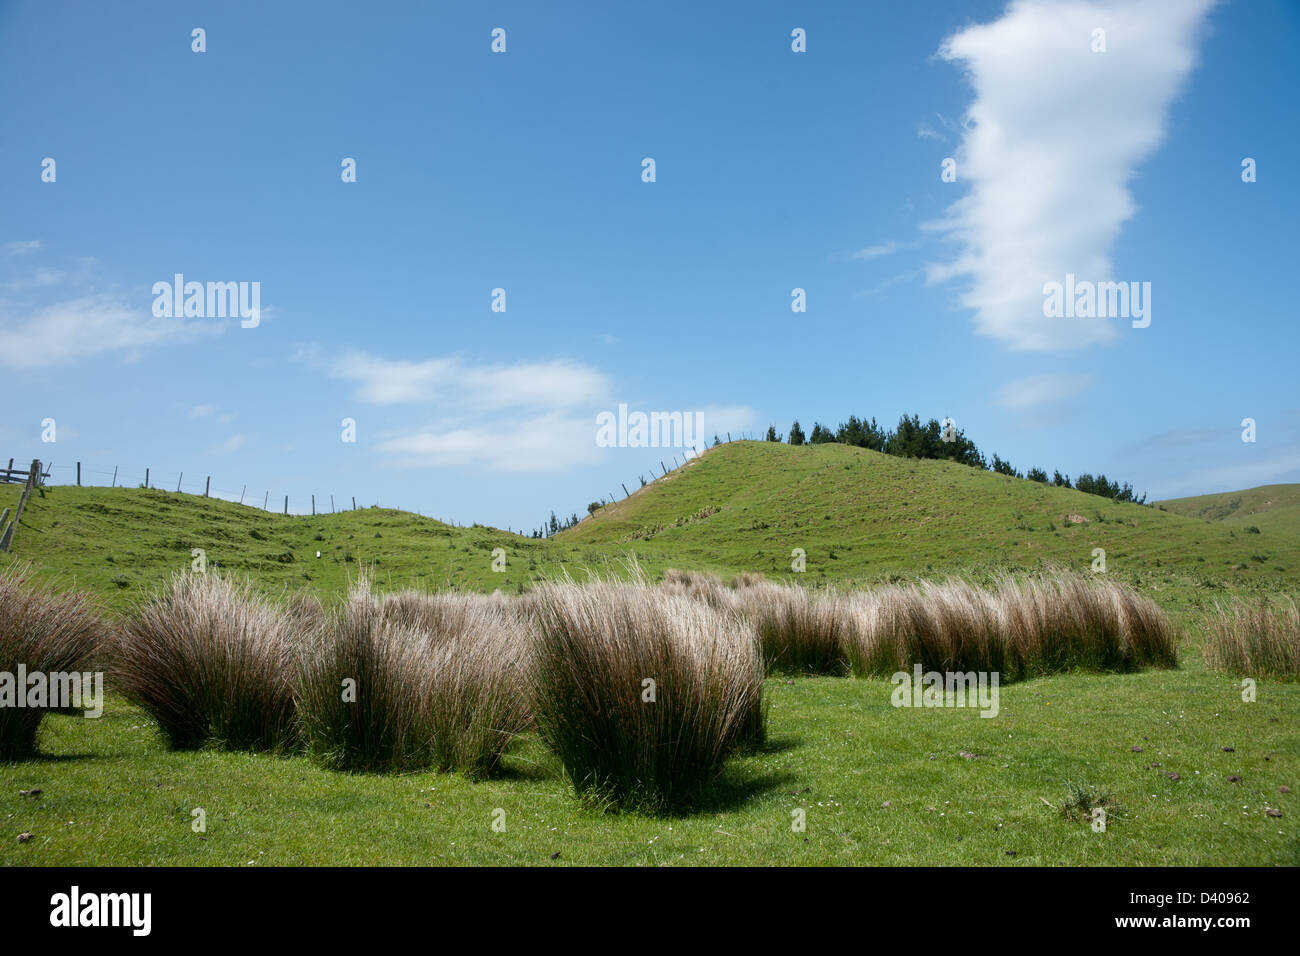 Wisp of stratus cloud above a typical New Zealand rural landscape. Stock Photo